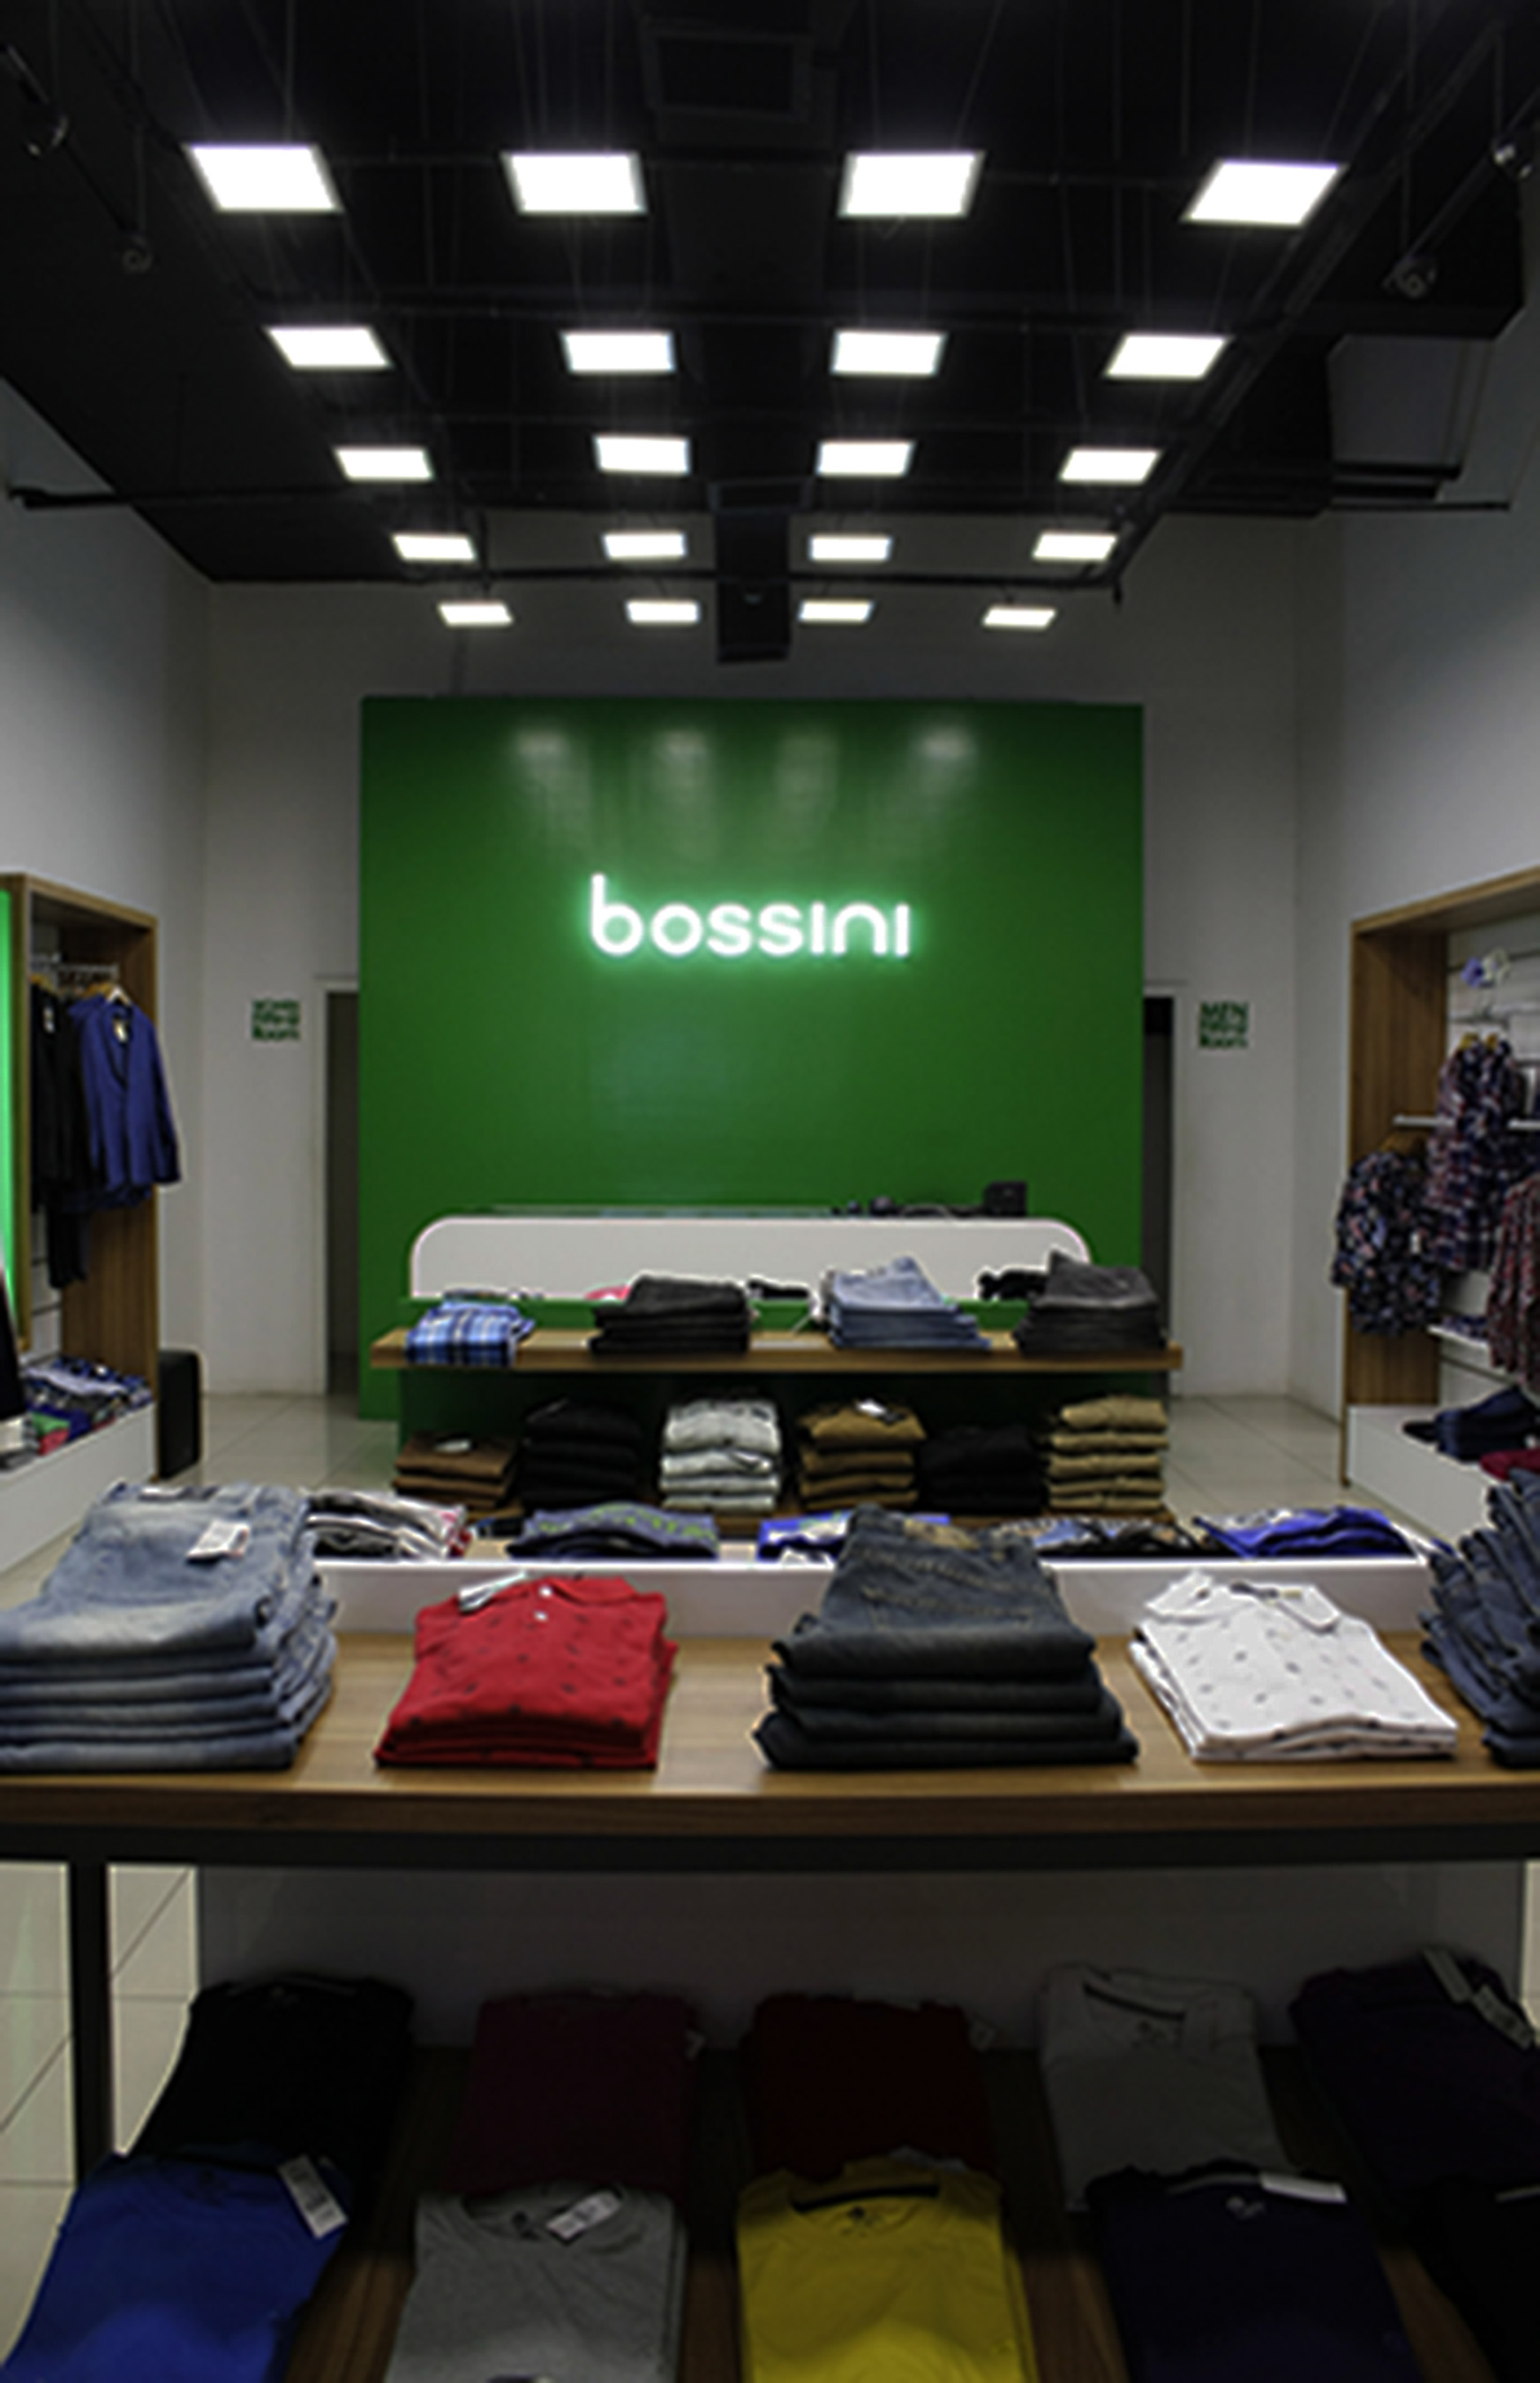 bossini-clothing-Shop-interior